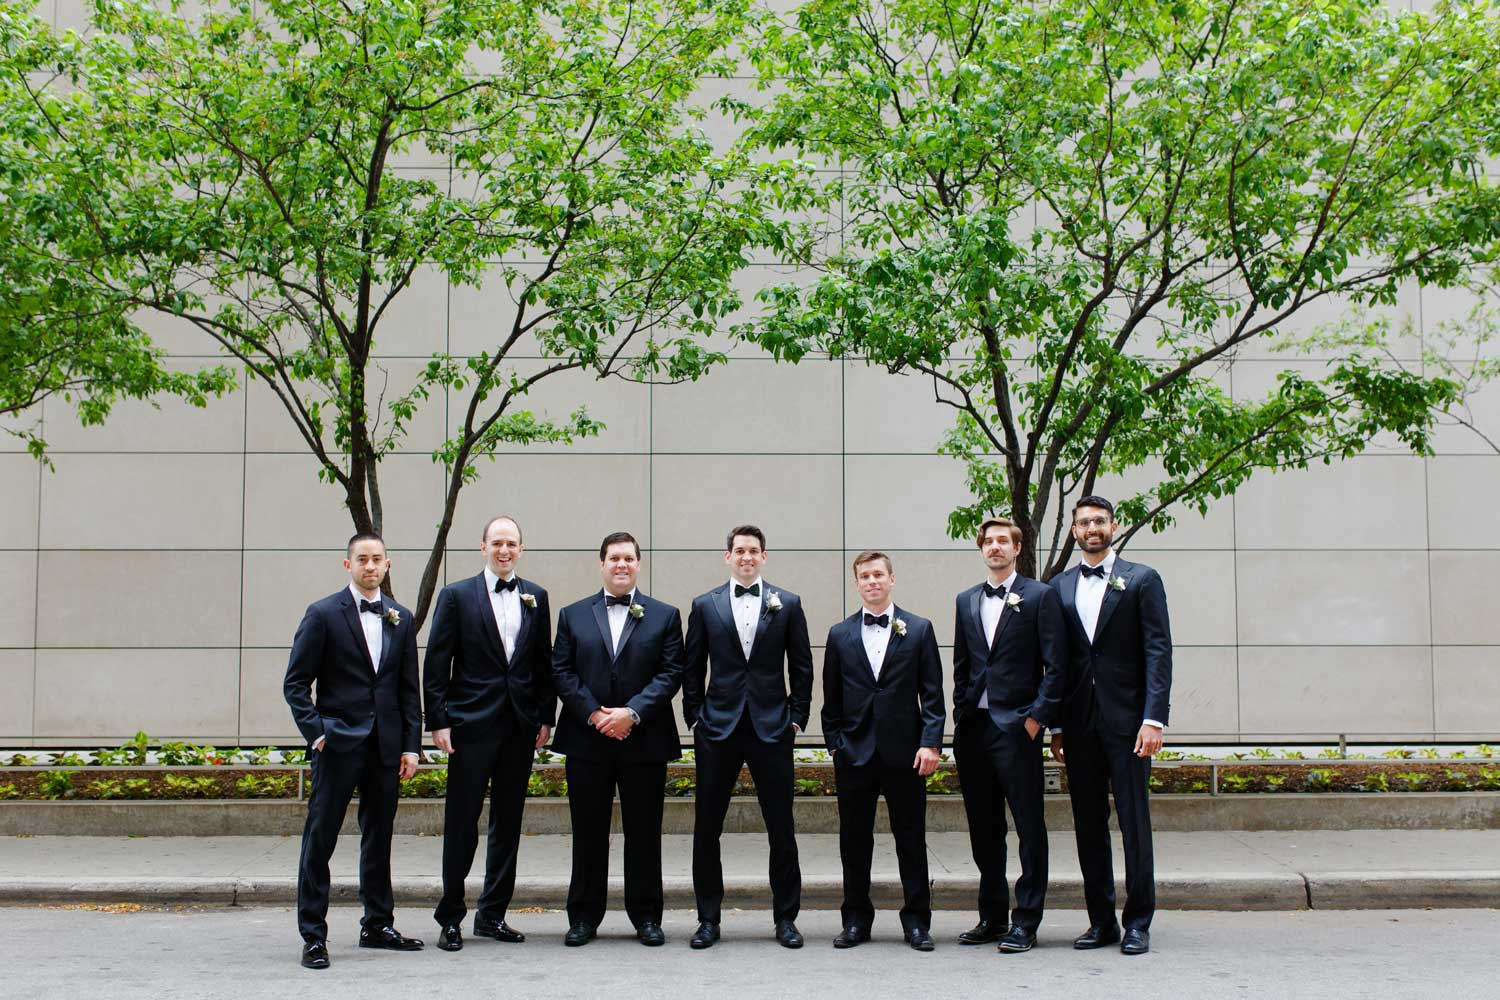 how to show appreciation for your groomsmen